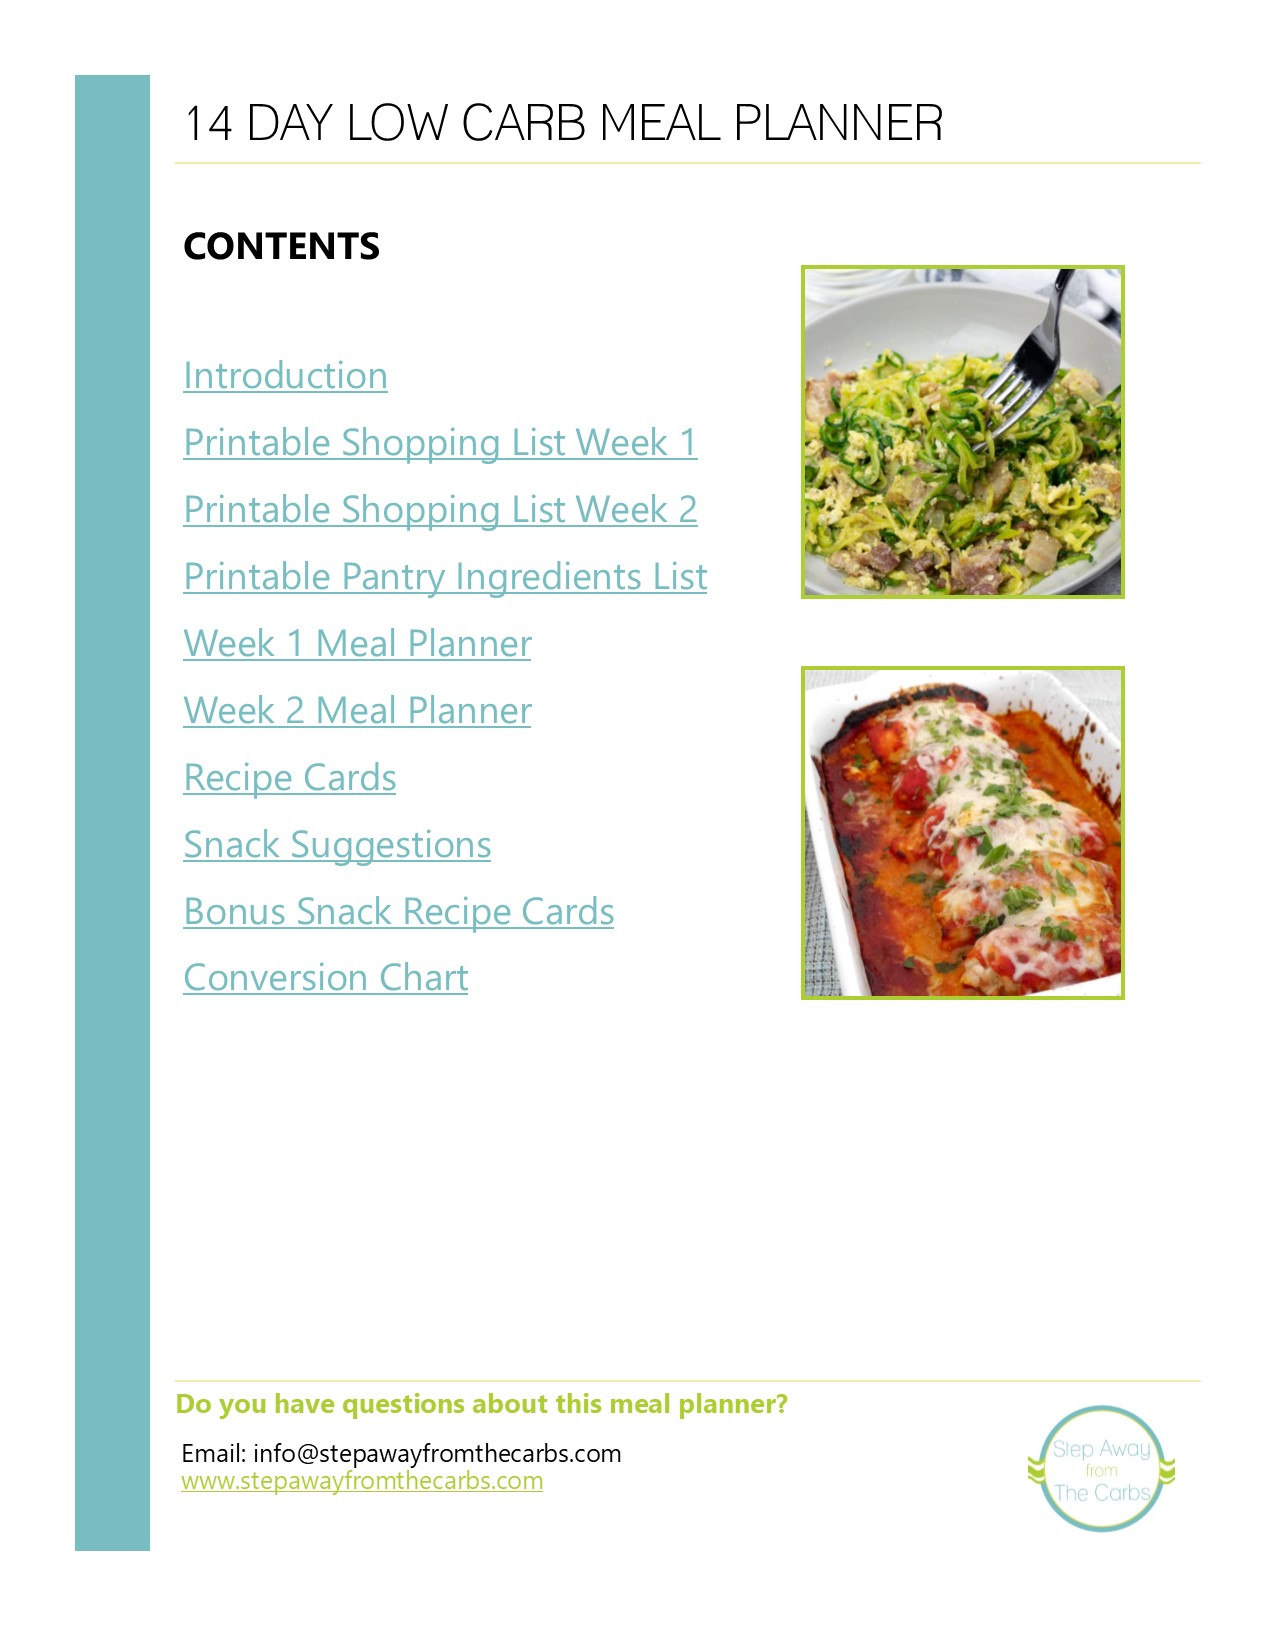 Welcome to the information page for my 14 Day Low Carb Meal Planner!!! Recipe cards, shopping lists, snack recommendations and more!